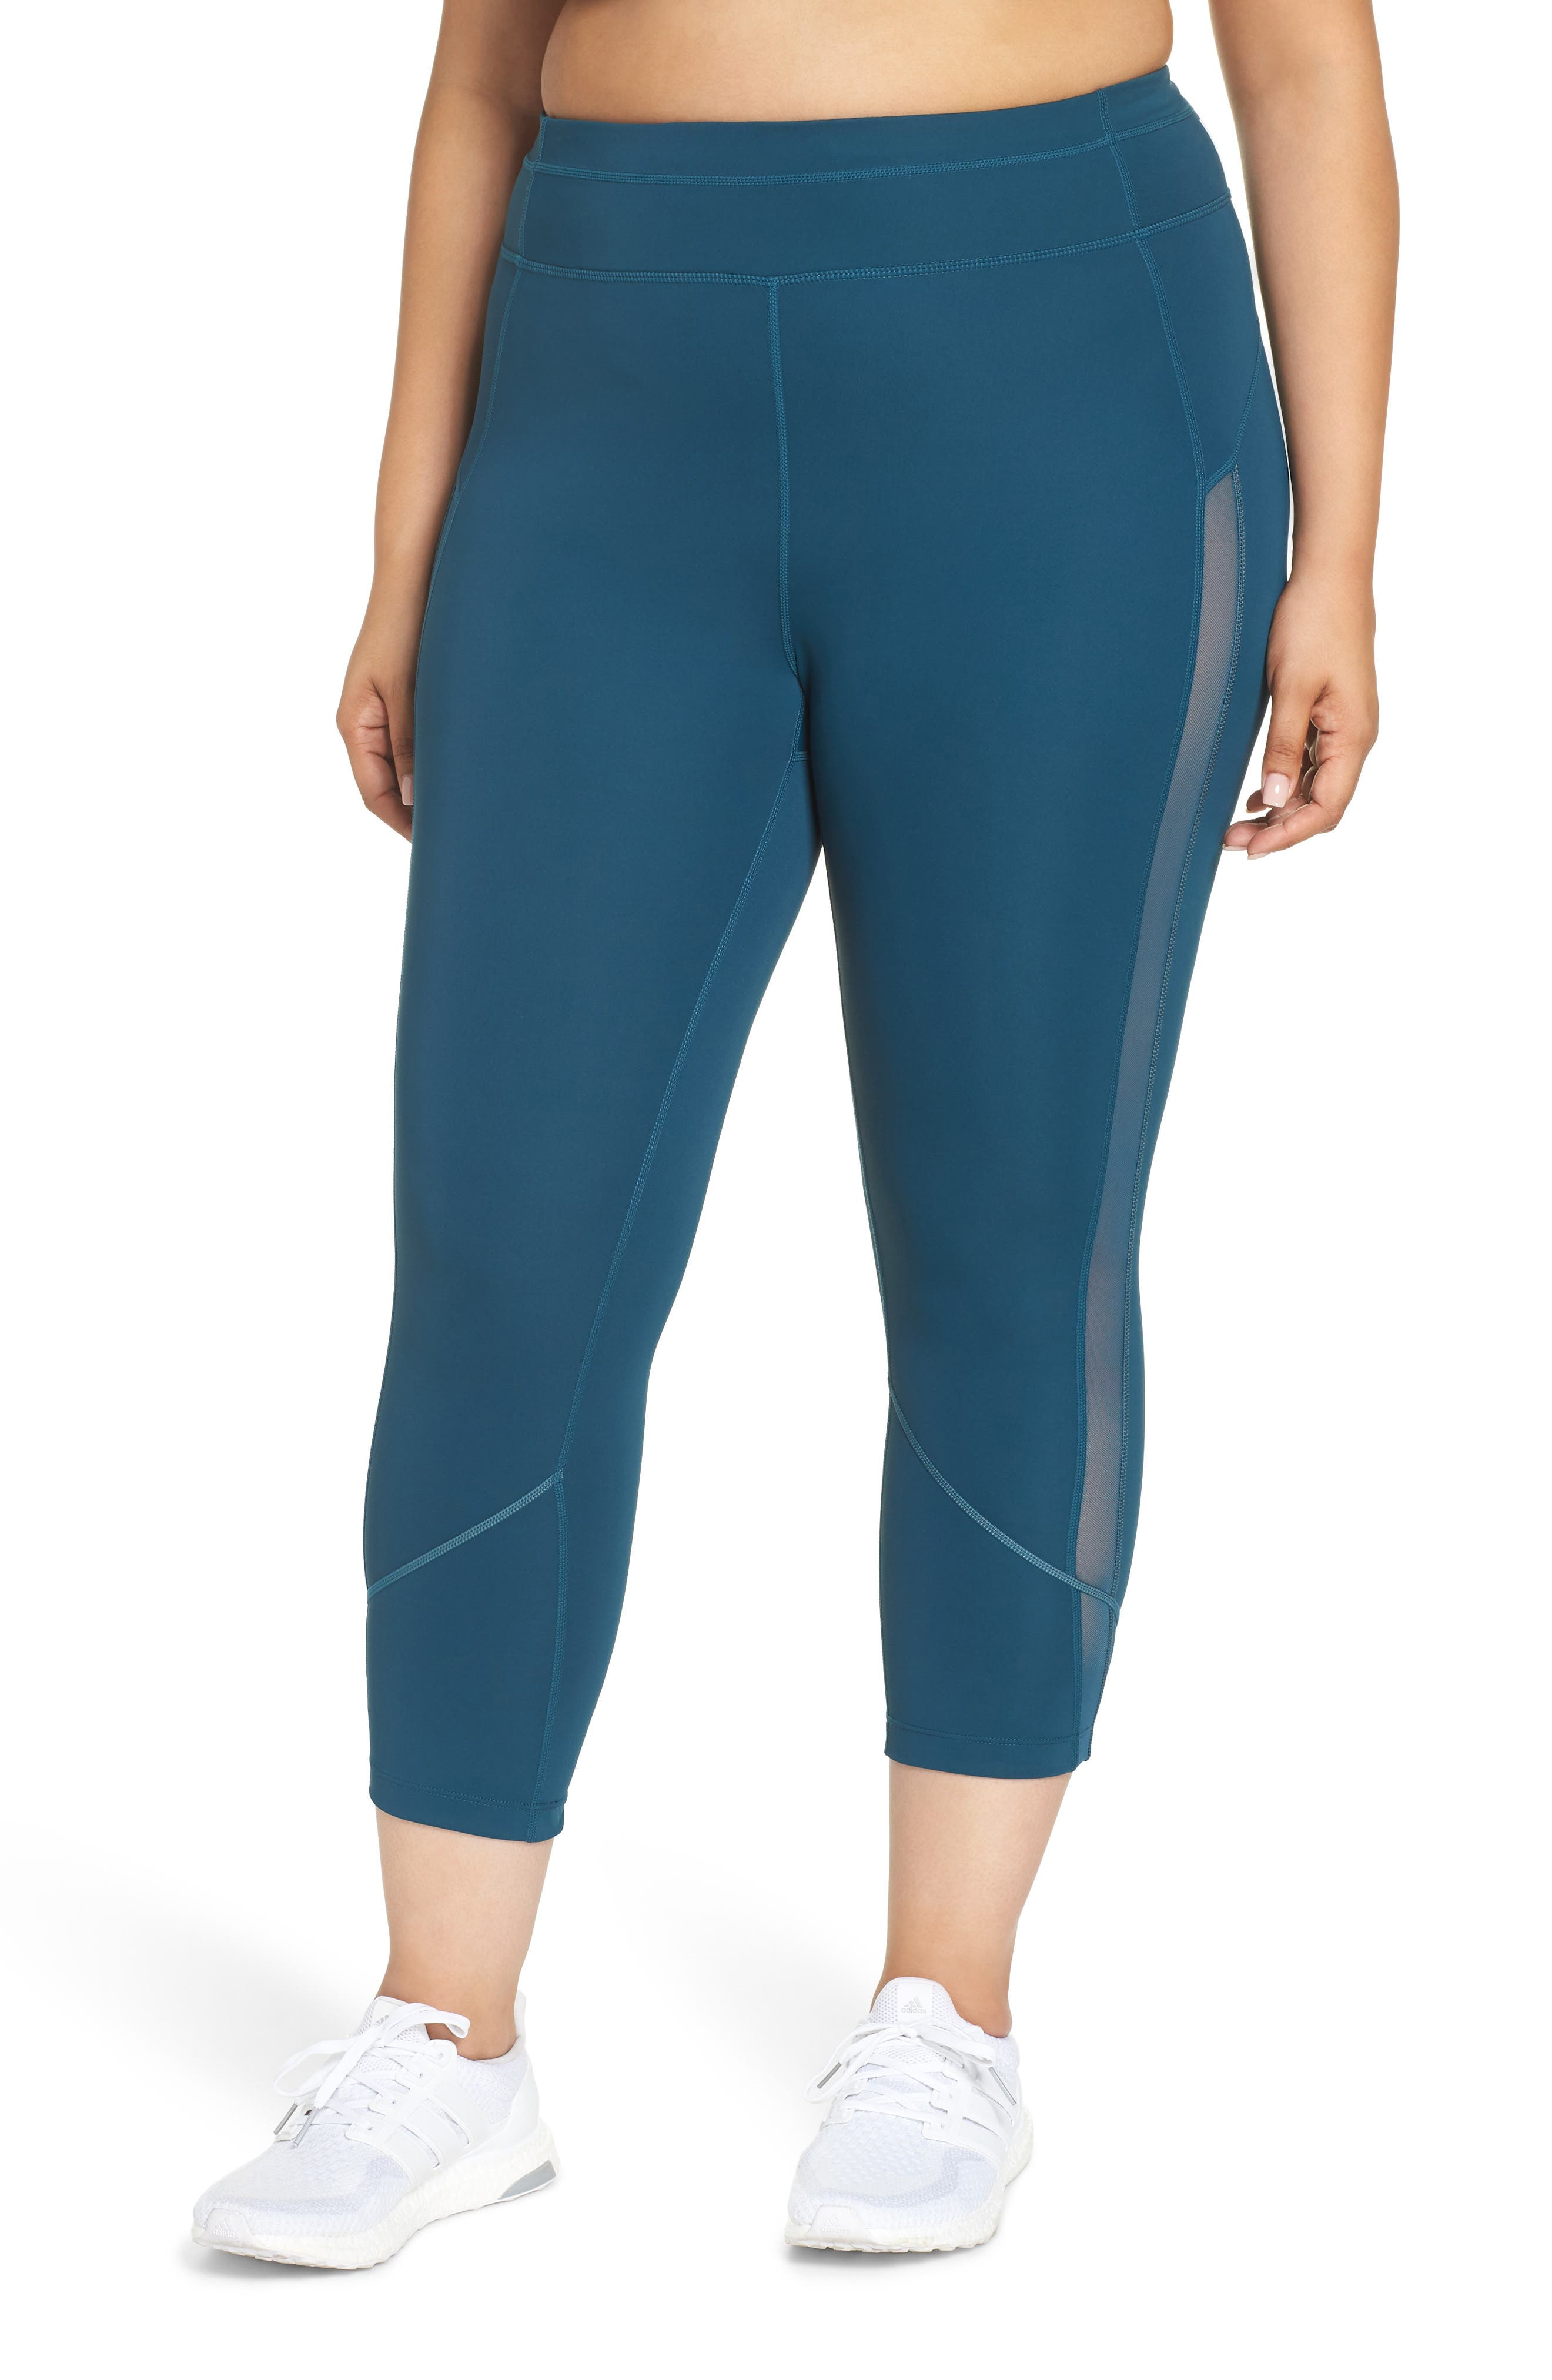 ZELLA All In High Rise Crop Tights, Main, color, 449